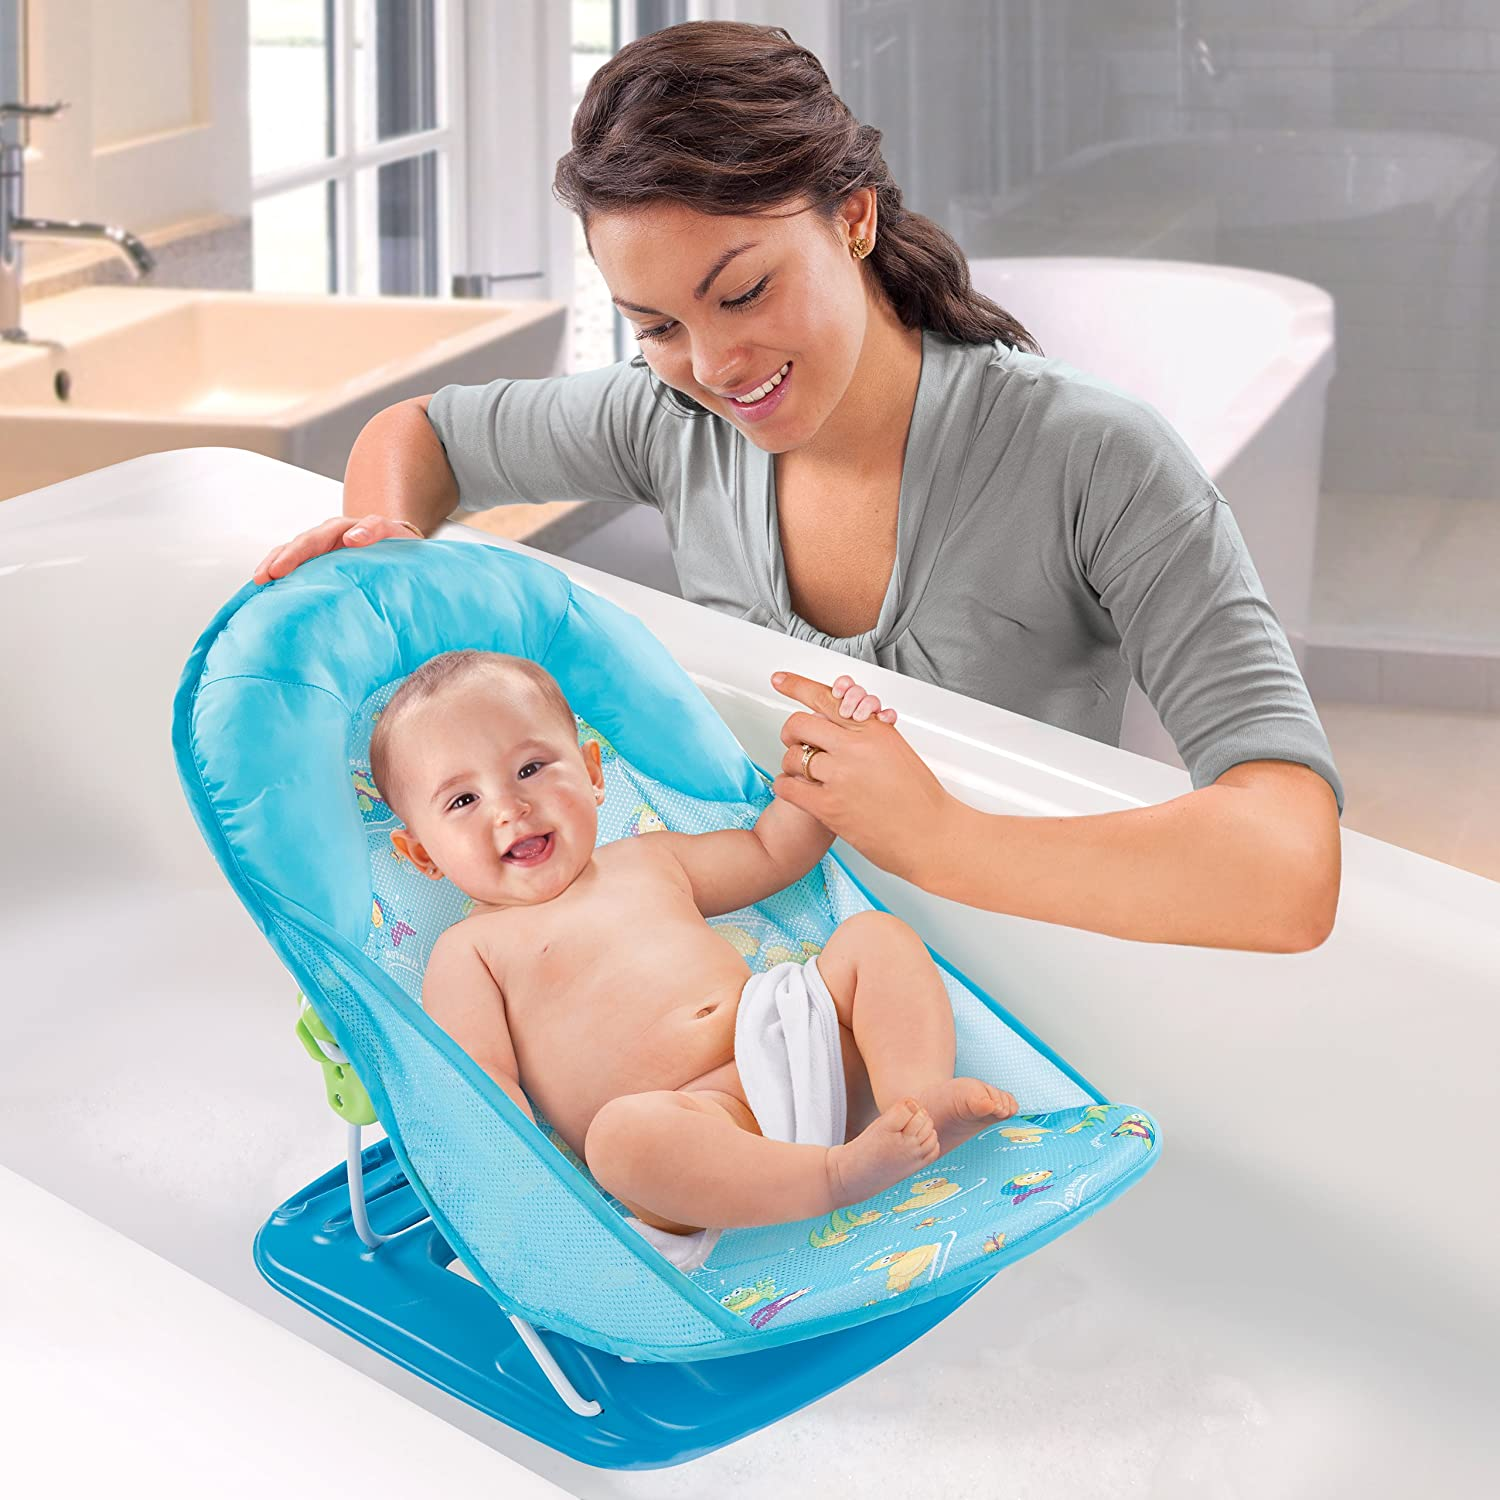 baby bath chair for tub unusual office chairs uk summer infant bather seat blue adjustable